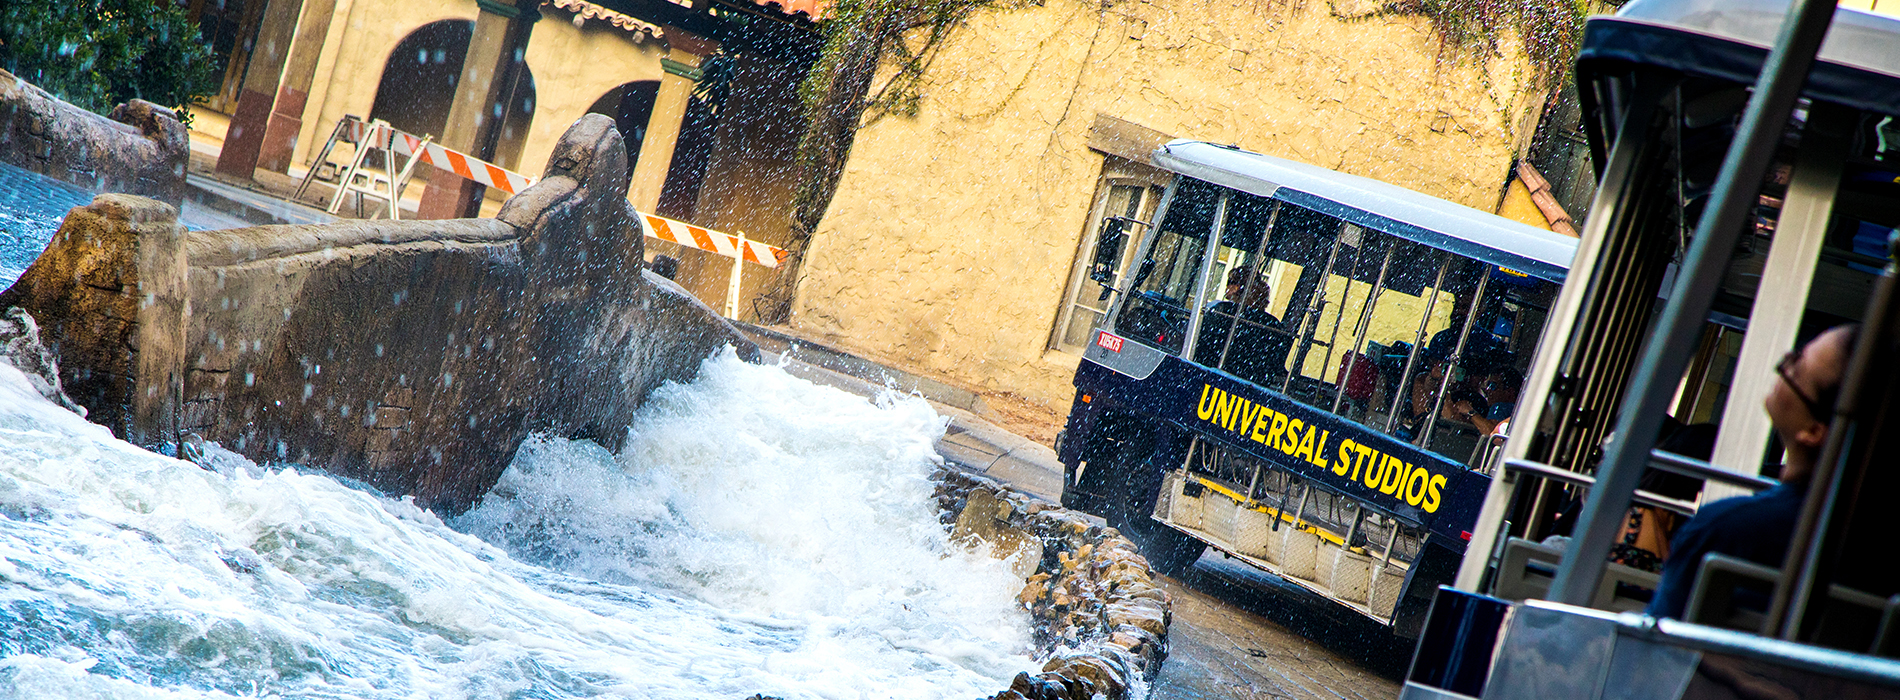 Universal Studios tram driving alongside crashing waves of water.